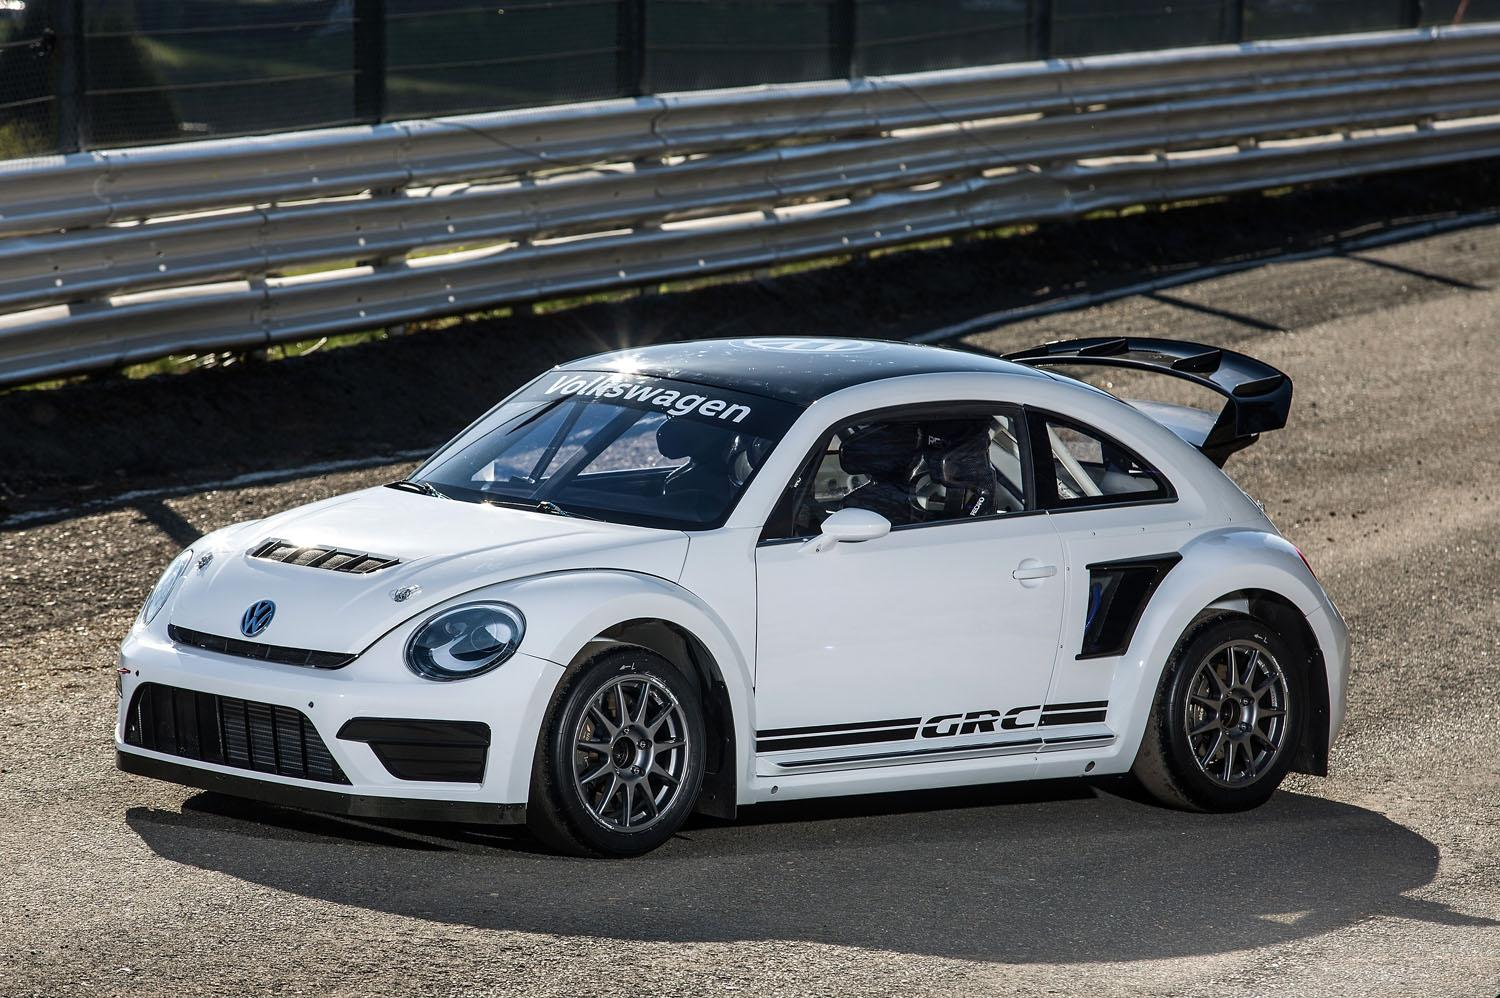 volkswagen s grc bound racer gives new meaning to super beetle. Black Bedroom Furniture Sets. Home Design Ideas